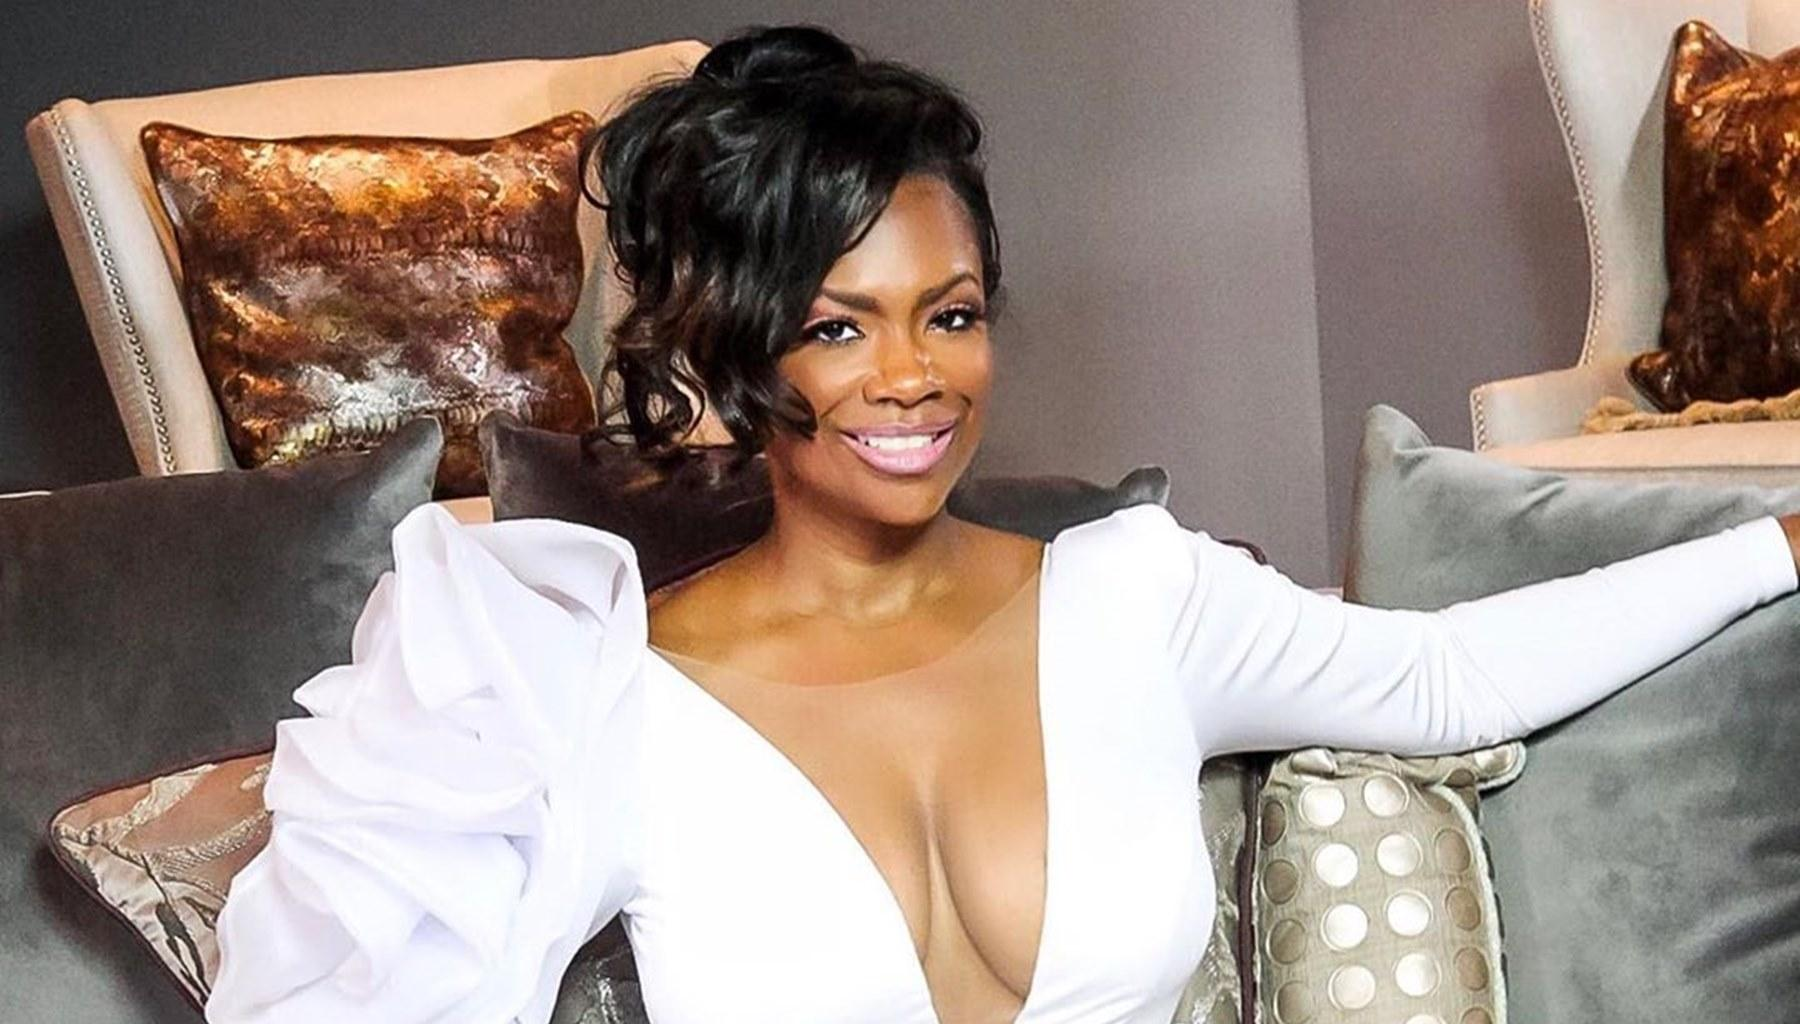 Kandi Burruss Brings The Drama In New Photos With A Revealing Outfit That Features A Deep-Plunging Neckline -- Husband Todd Tucker's Day Just Got Brighter